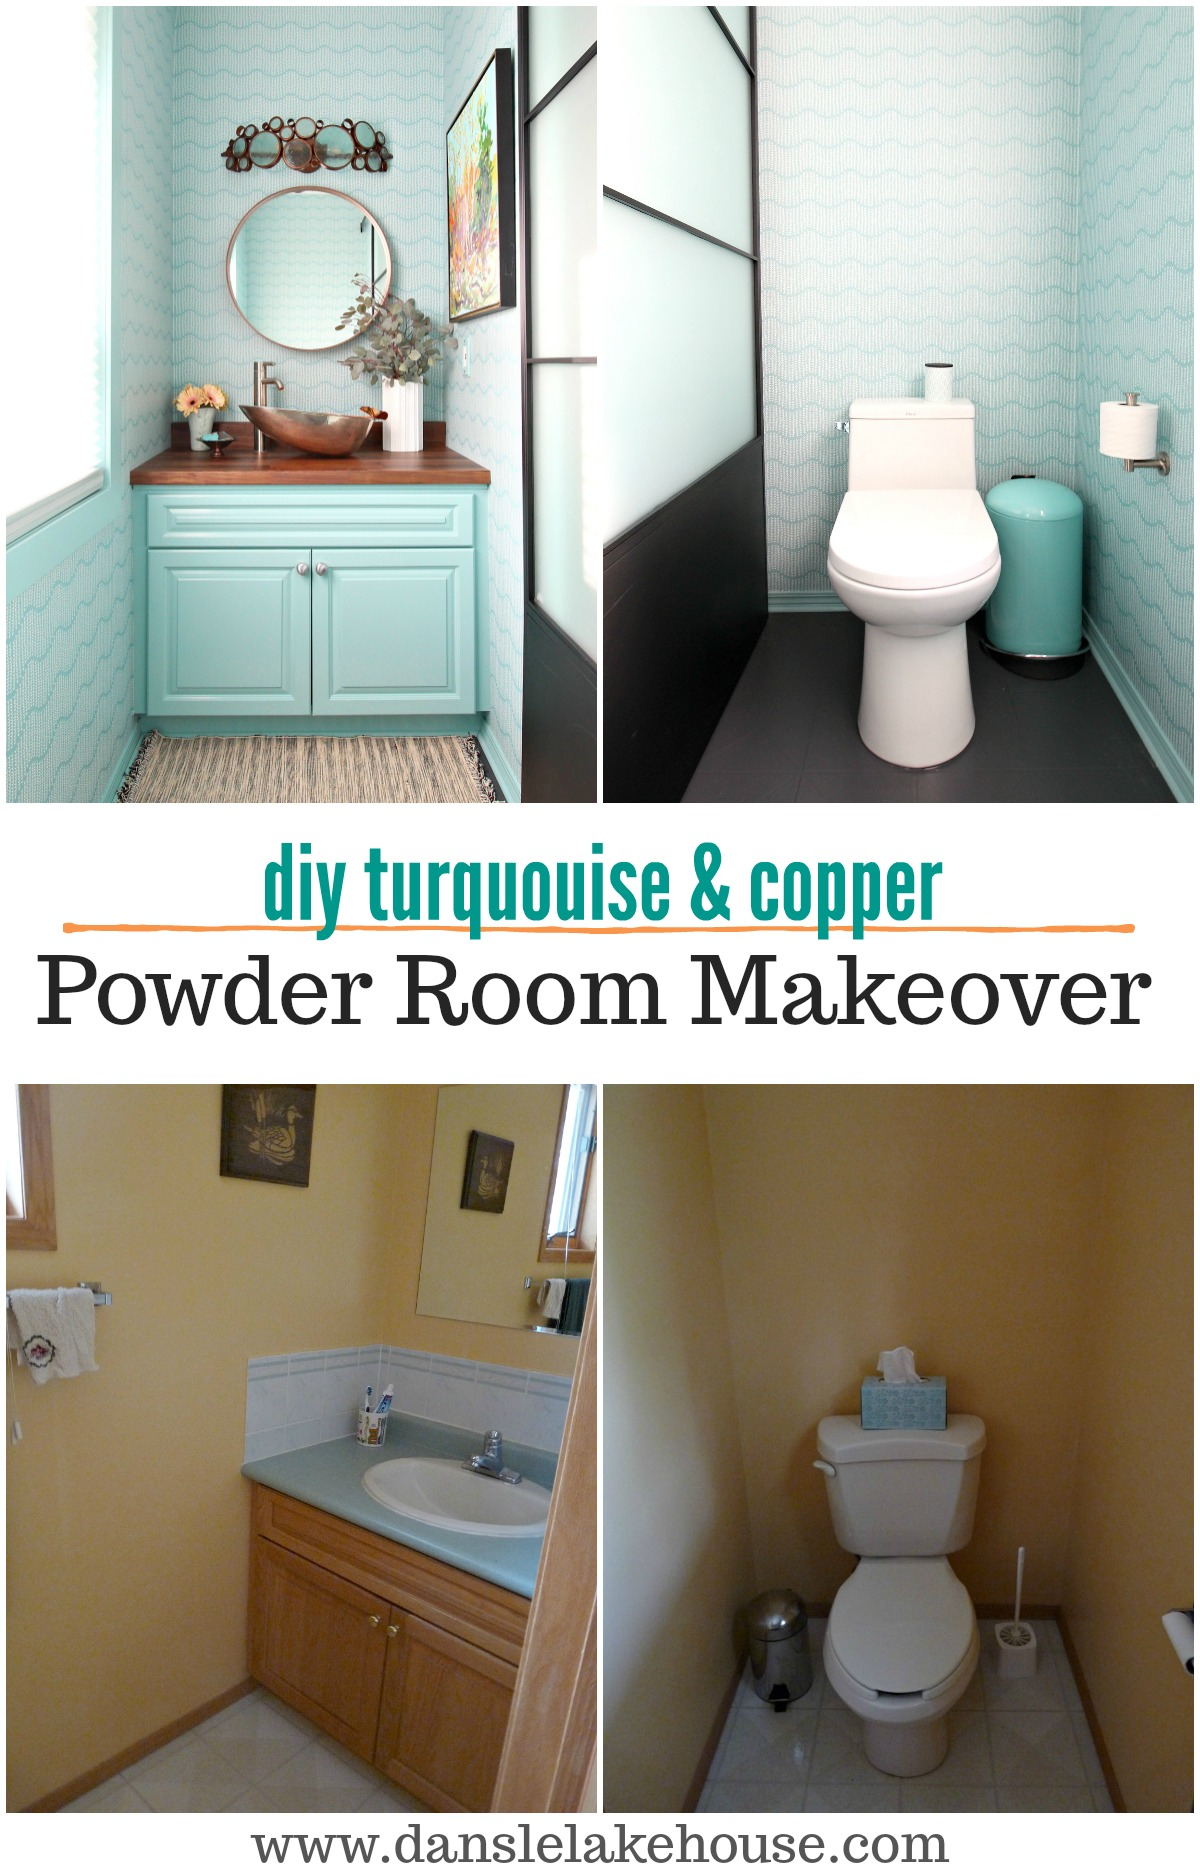 Copper & Turquoise DIY Powder Room Makeover